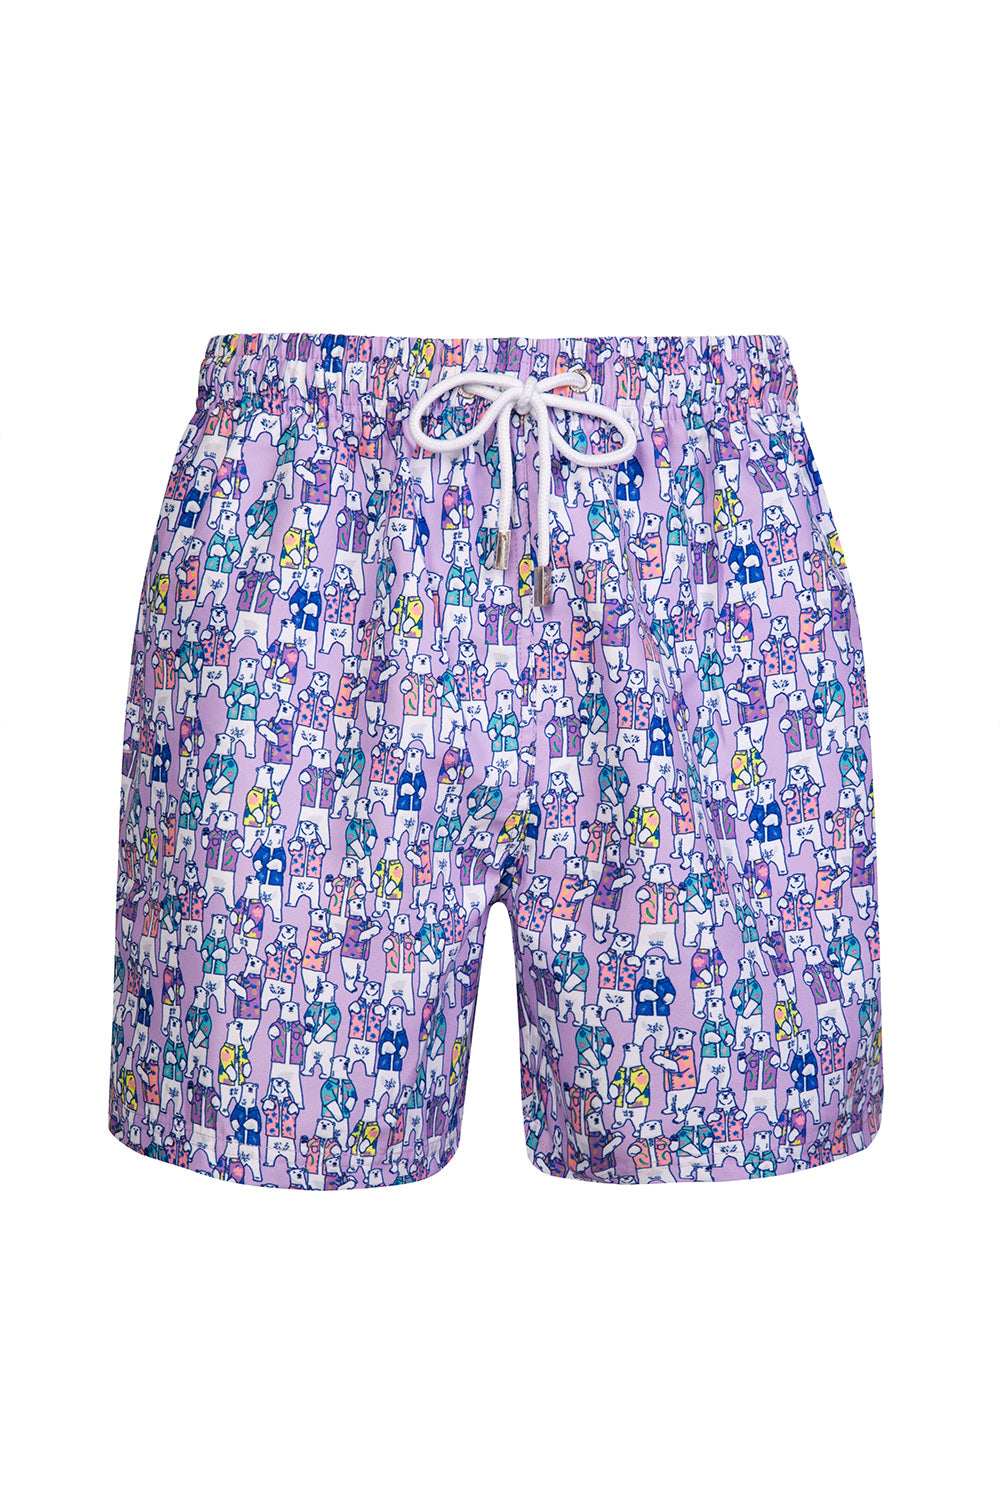 The Purple Hawaiian Polar Bear Swim Short